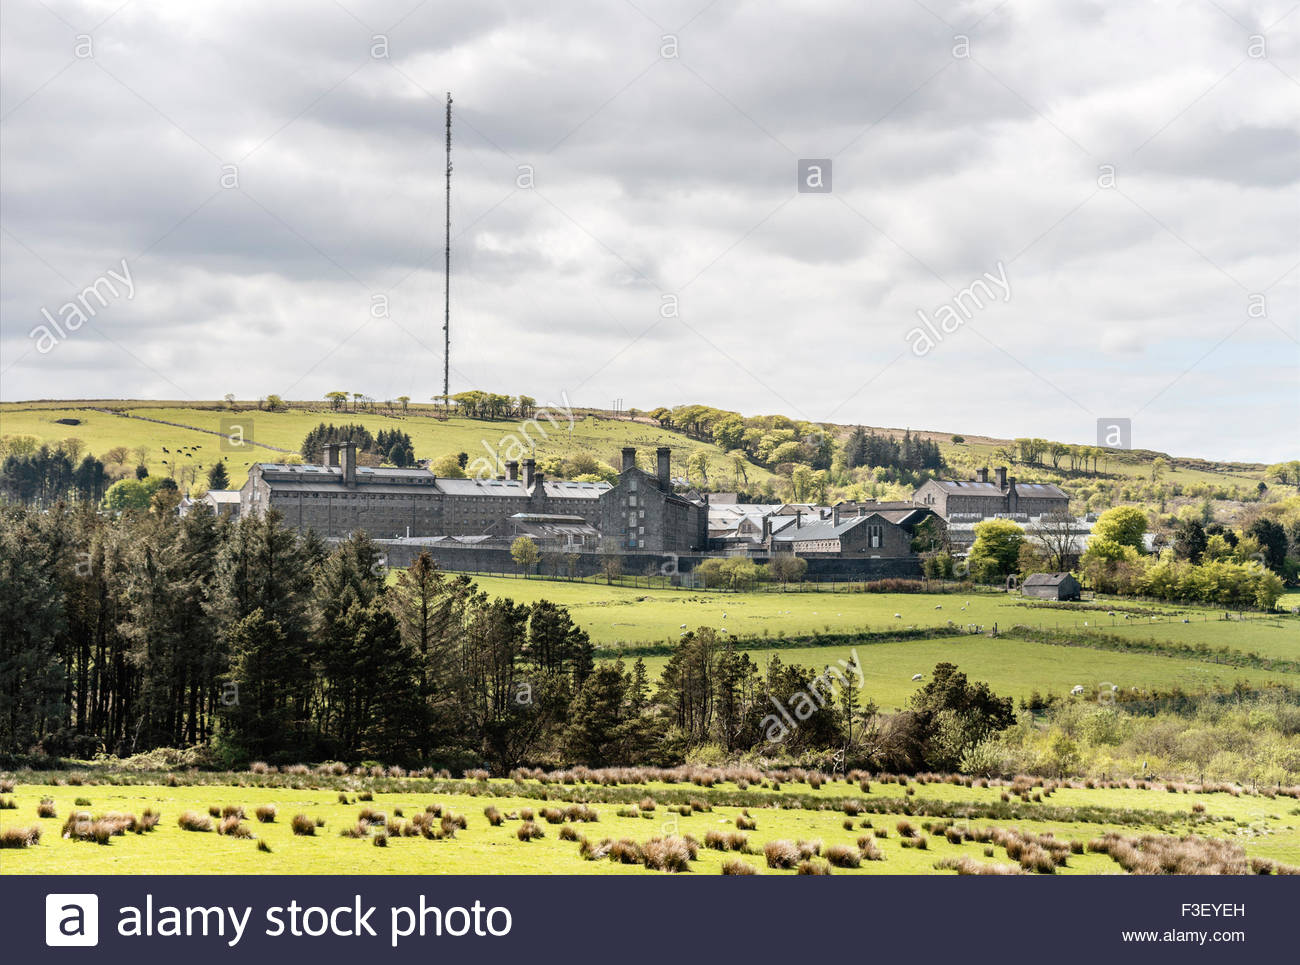 Distant view at Dartmoor Prison in Princetown, Devon, England, UK | Aussicht auf das Dartmoor Prison Gefaengnis - Stock Image